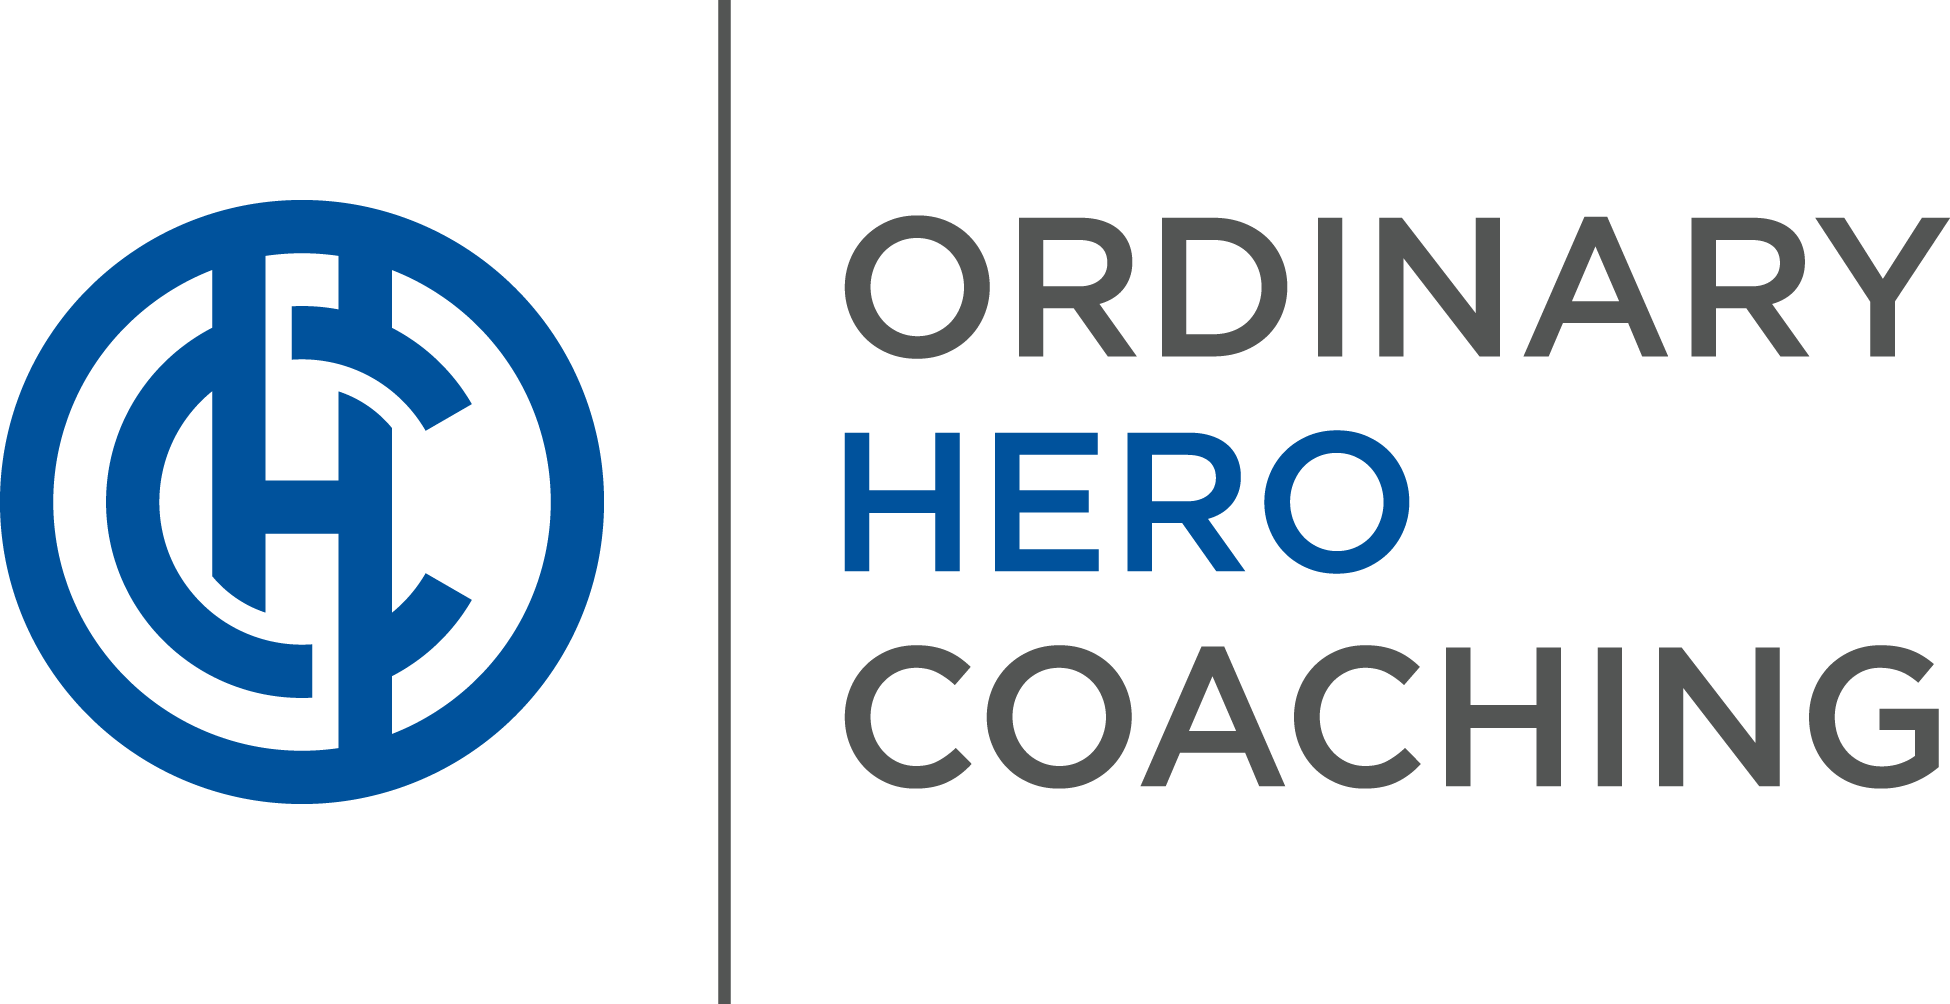 Home ordinary hero coaching. Military clipart everyday heroes